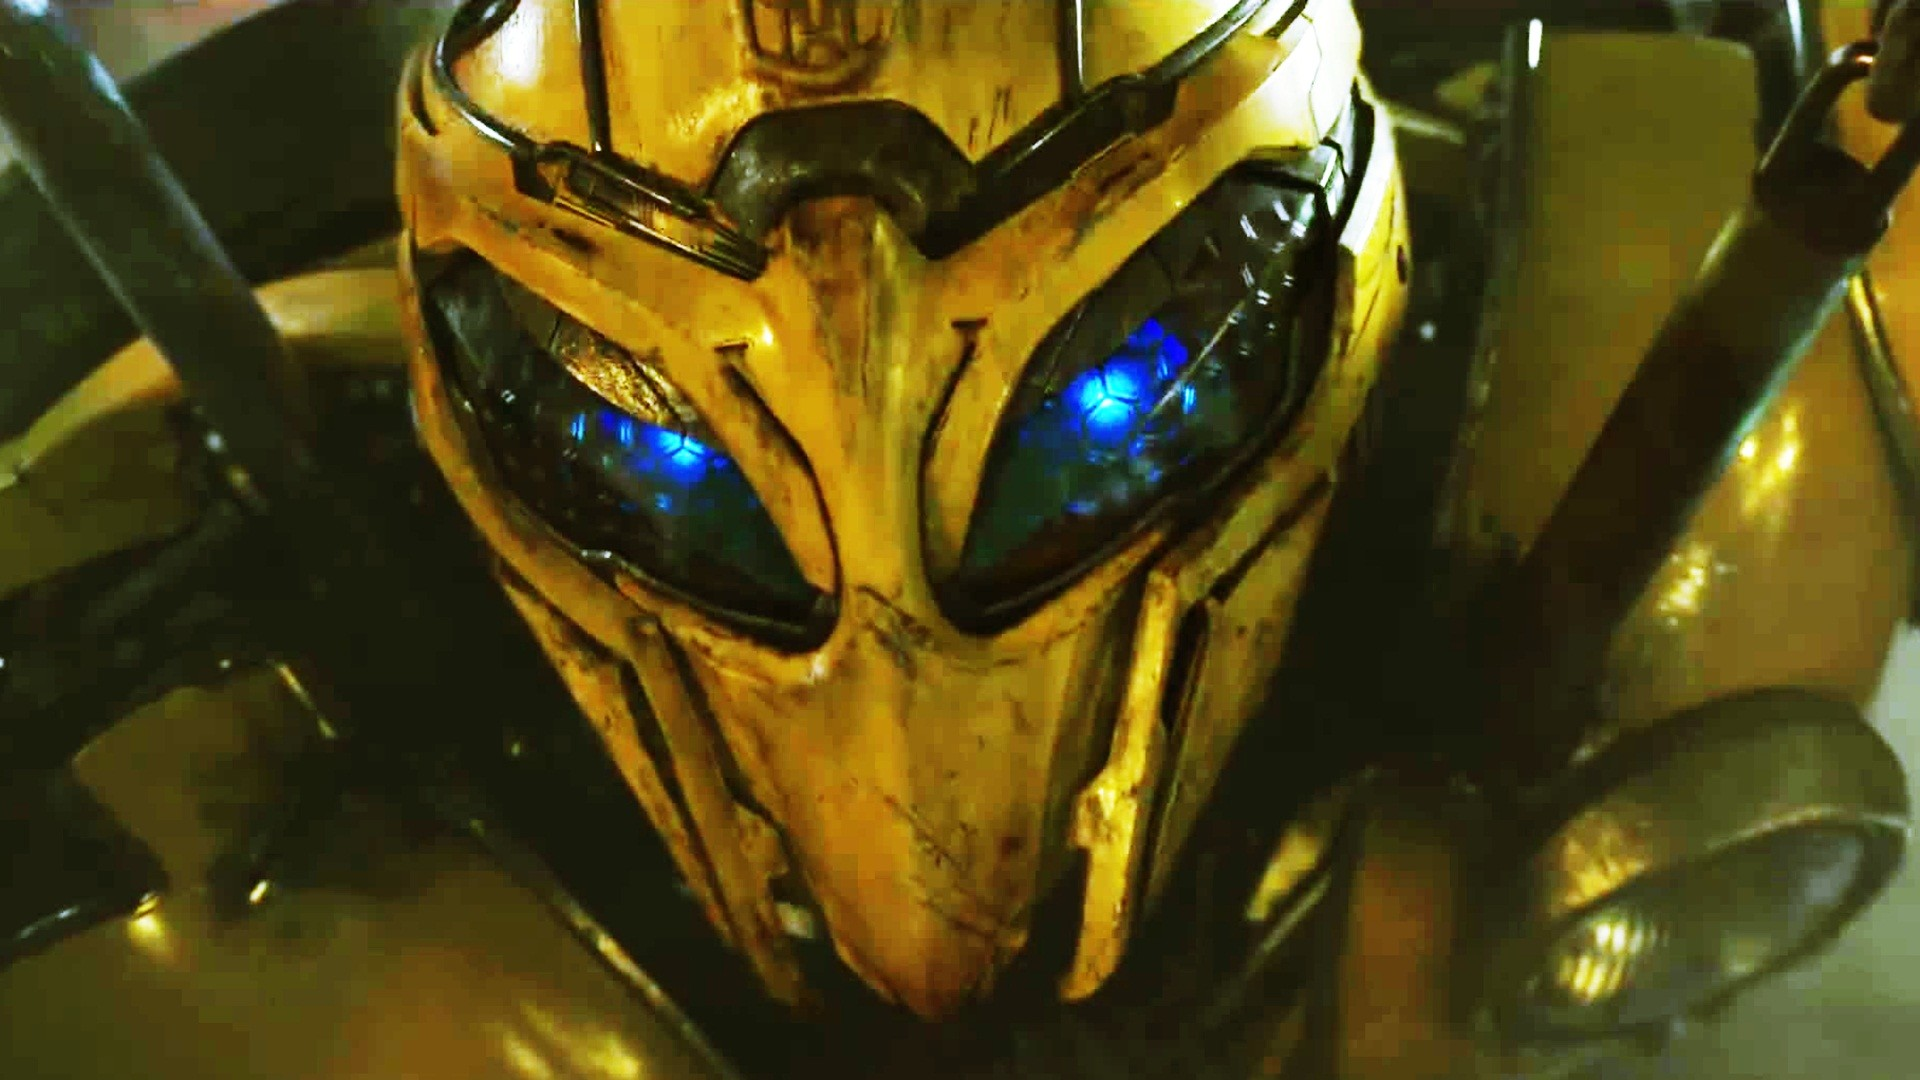 Res: 1920x1080, Bumblebee Movie HD Wallpapers 36177